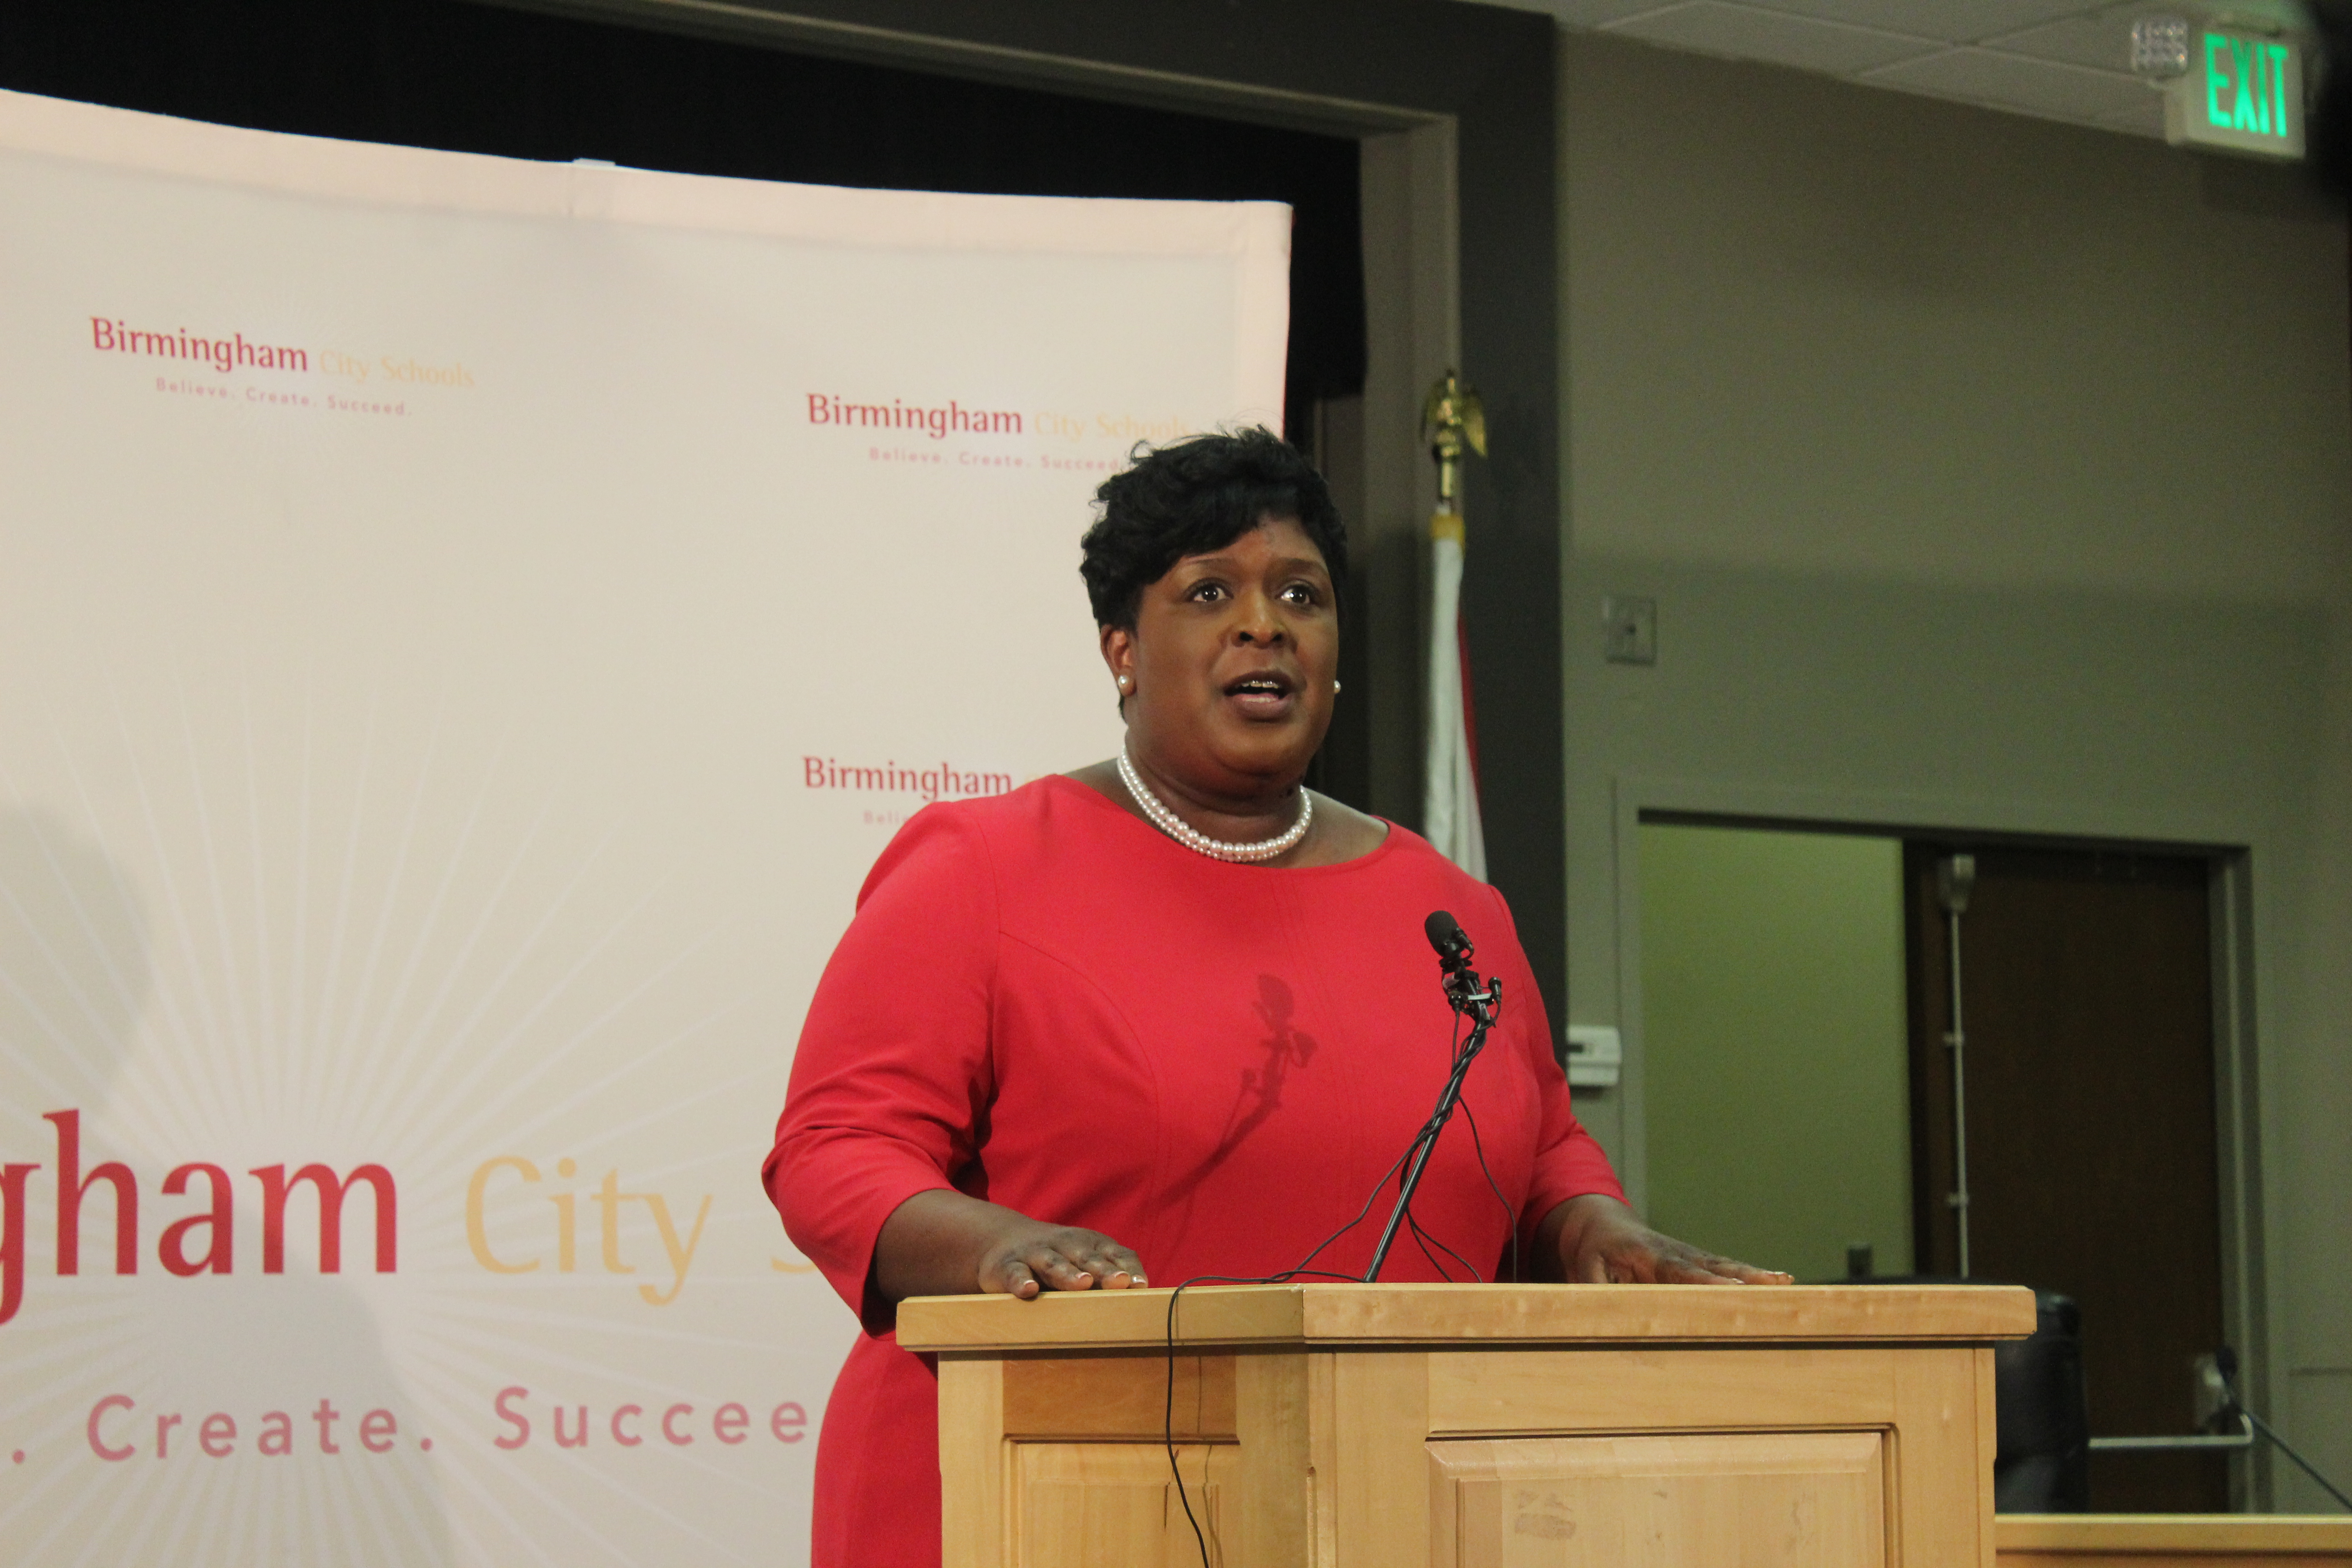 Dr. Lisa Herring said she is aware of the history of Birmingham City Schools, and she is hoping to form positive relationships with the school board. (Ariel Worthy/The Birmingham Times)